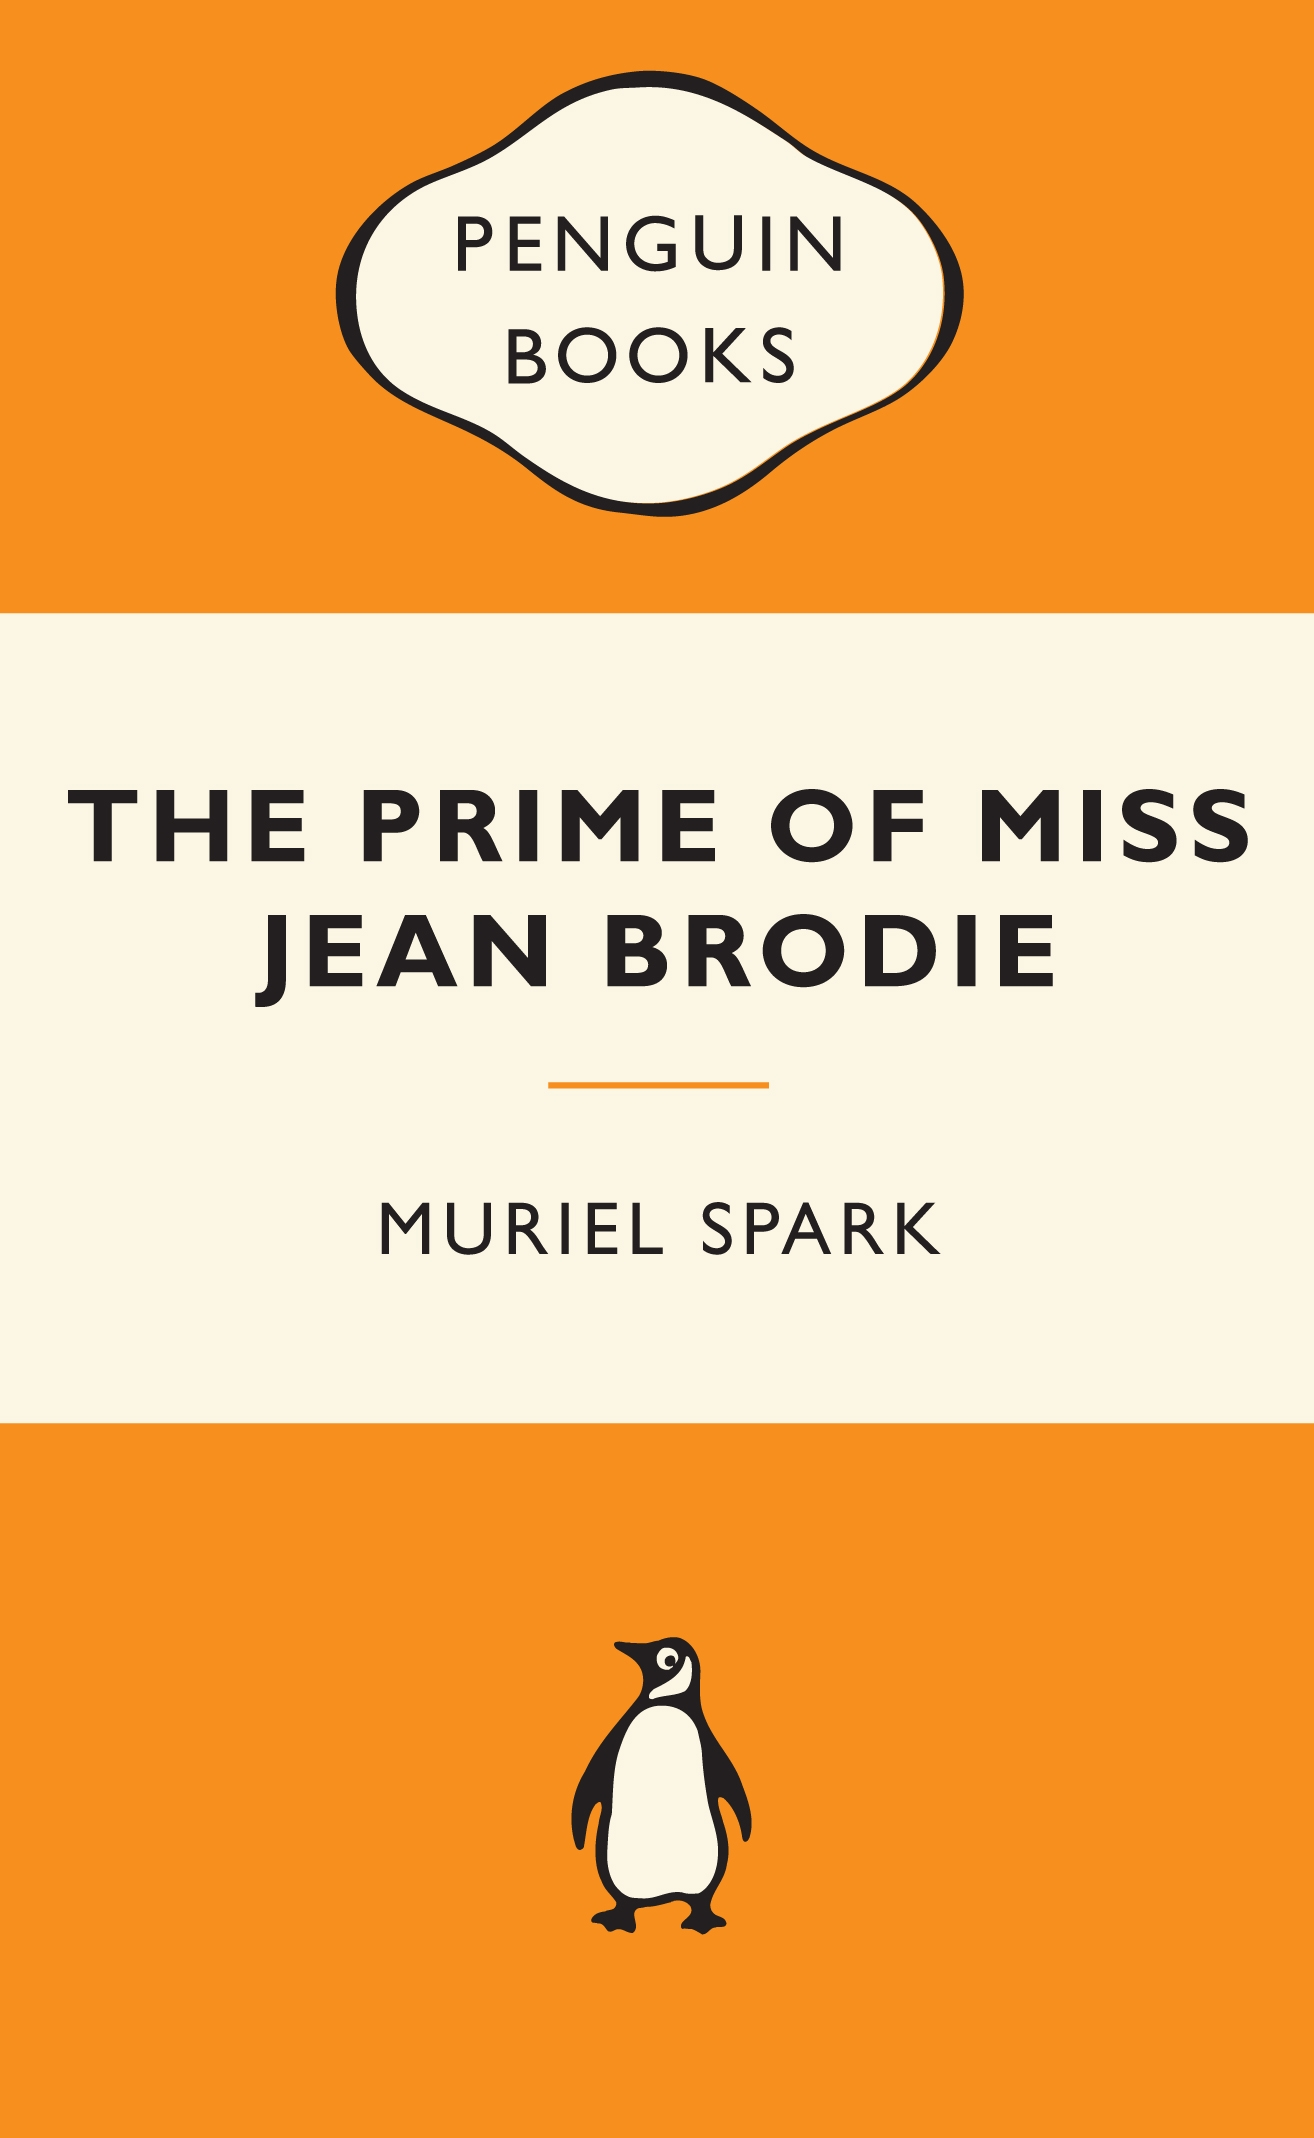 Image result for the prime of miss jean brodie book